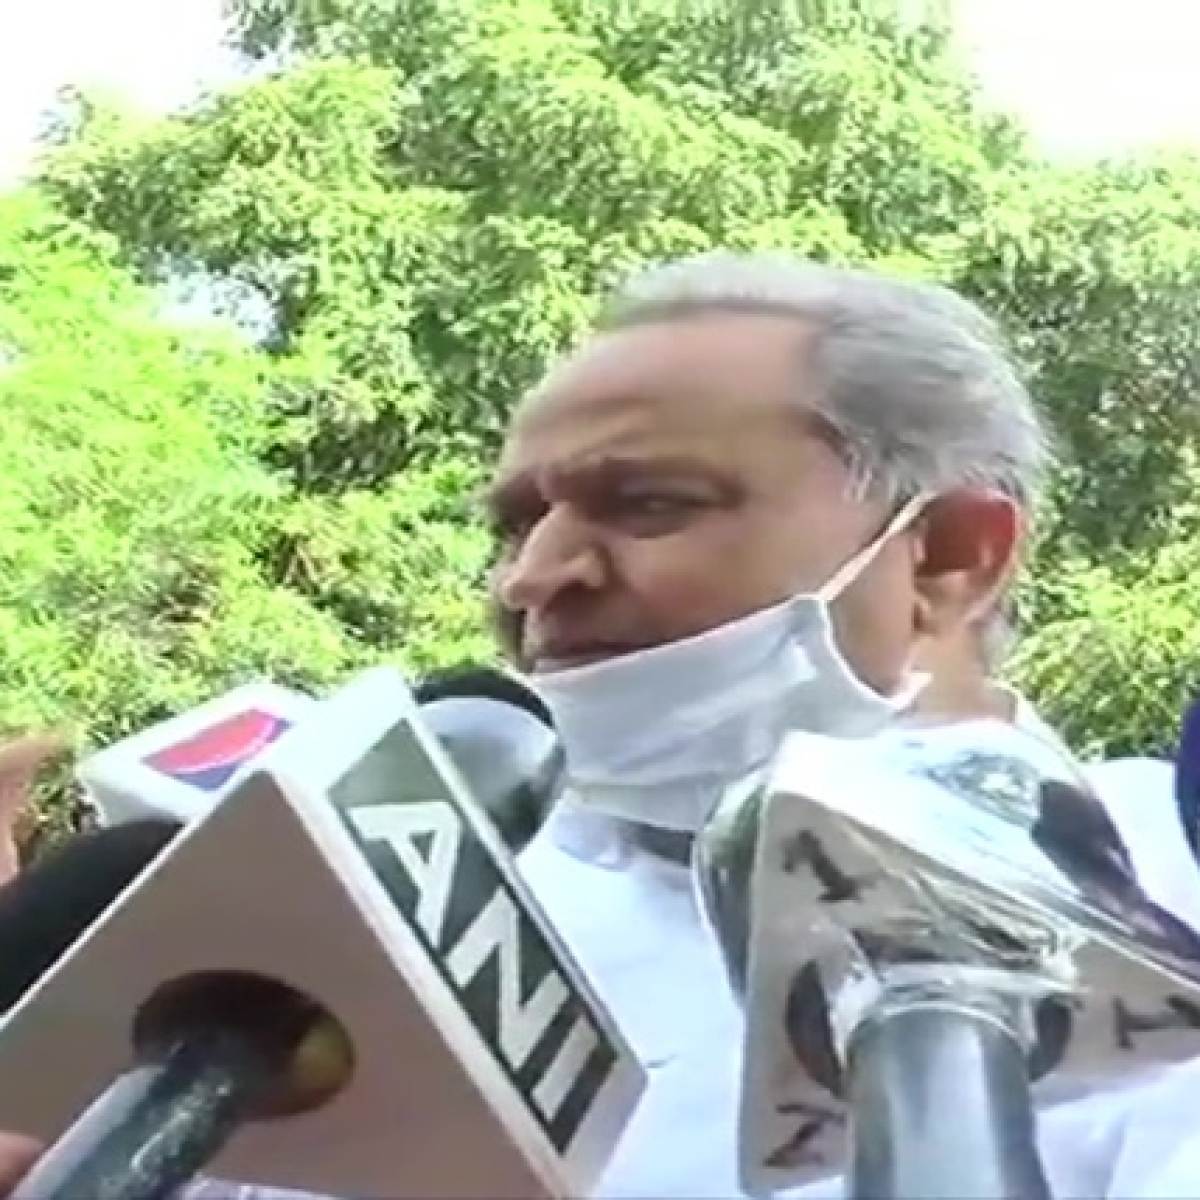 Rajasthan Row Latest Updates: Cabinet meeting to be held at Gehlot's residence at 7.30 pm